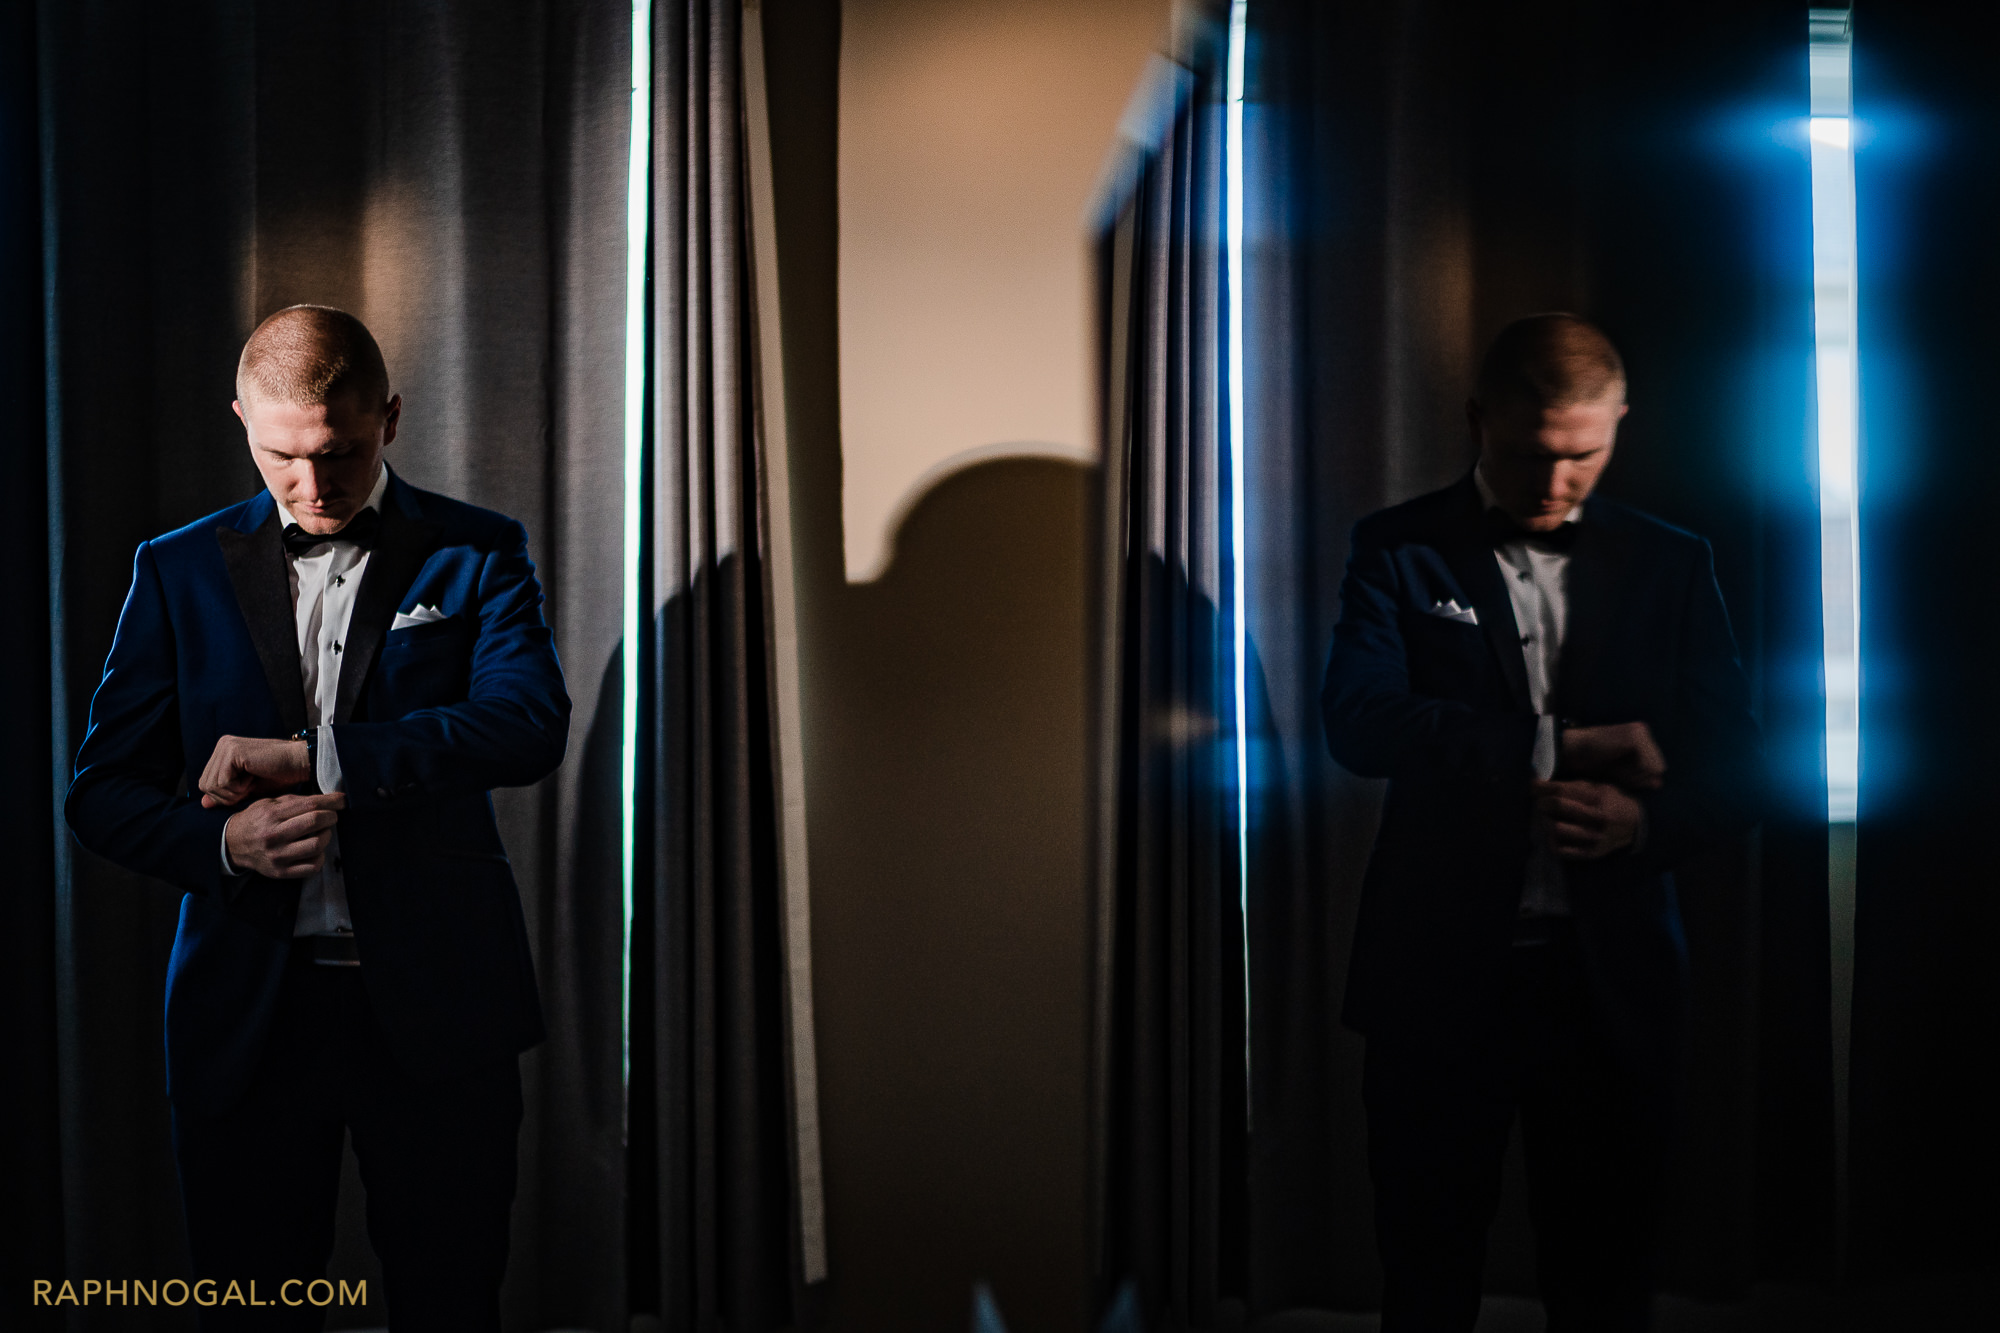 Groom putting on cufflinks, reflected in a TV screen